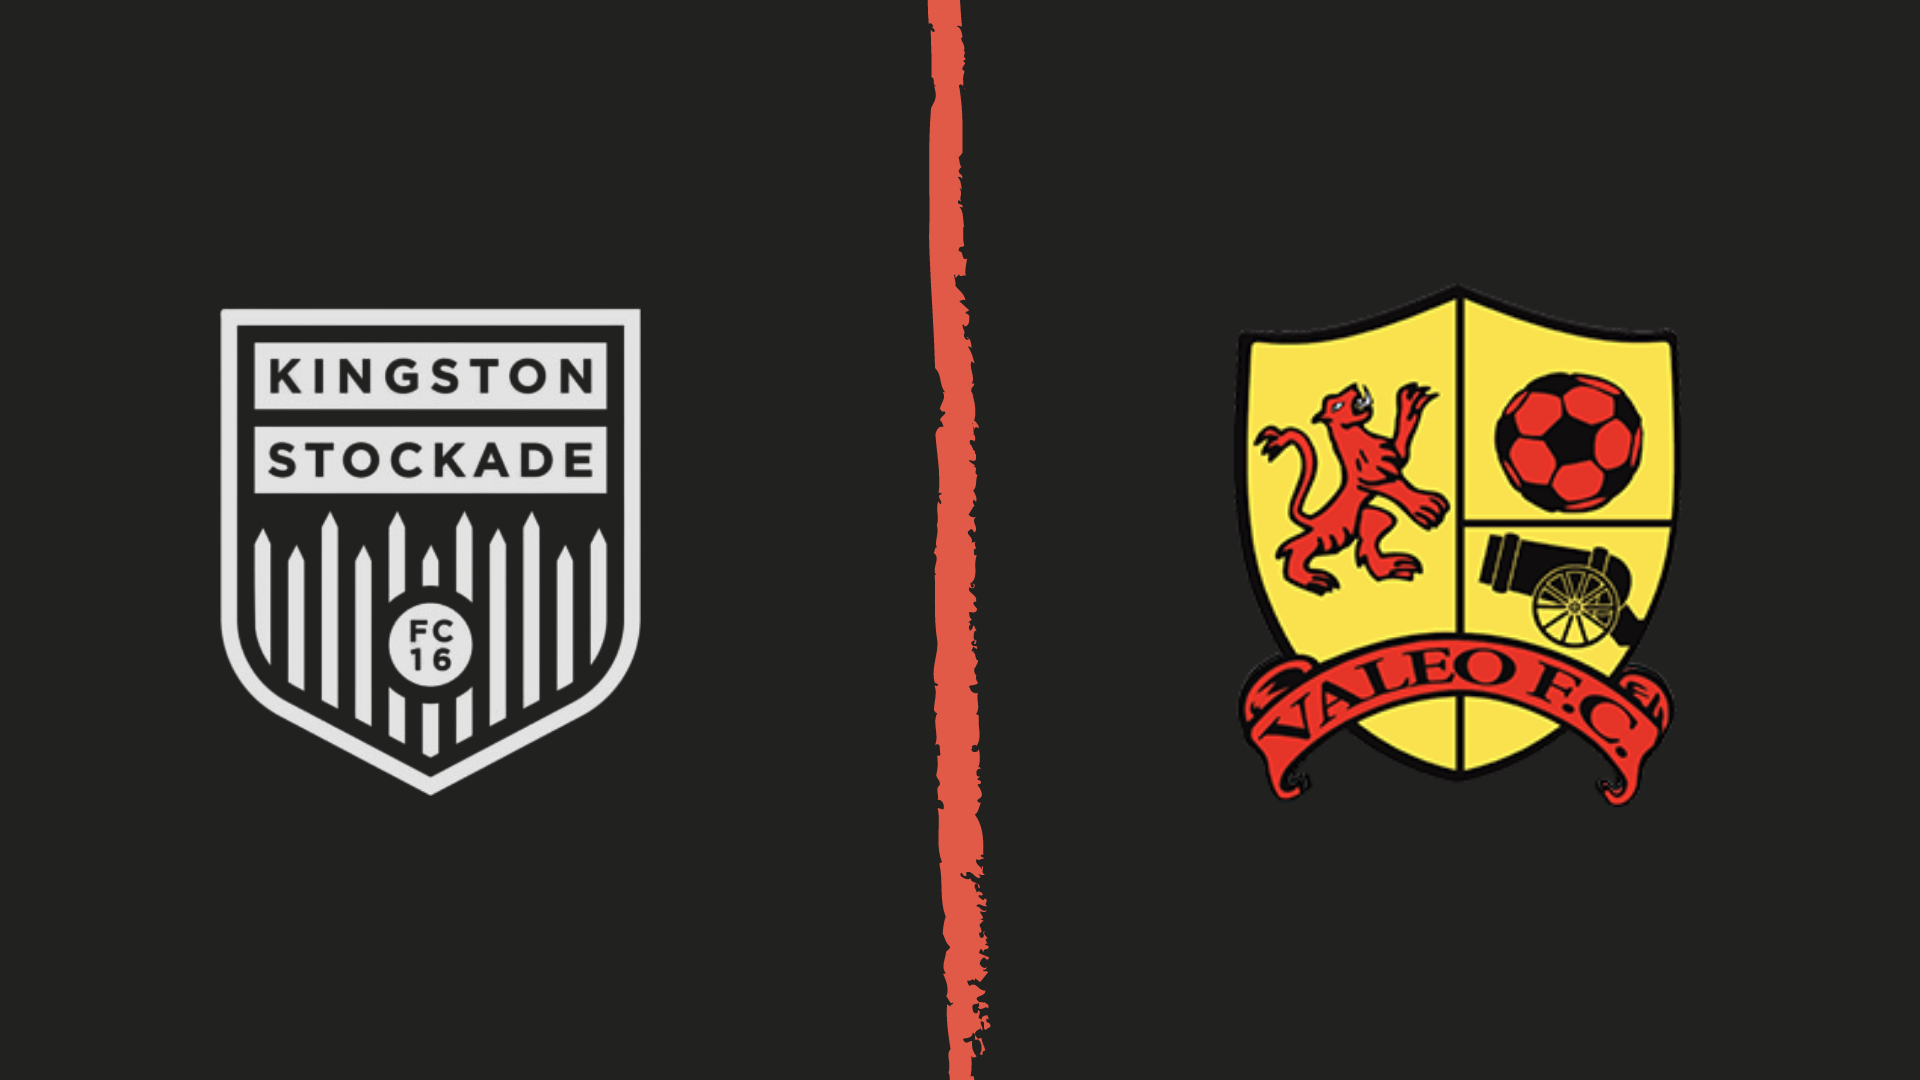 Kingston Stockade FC vs Valeo FC